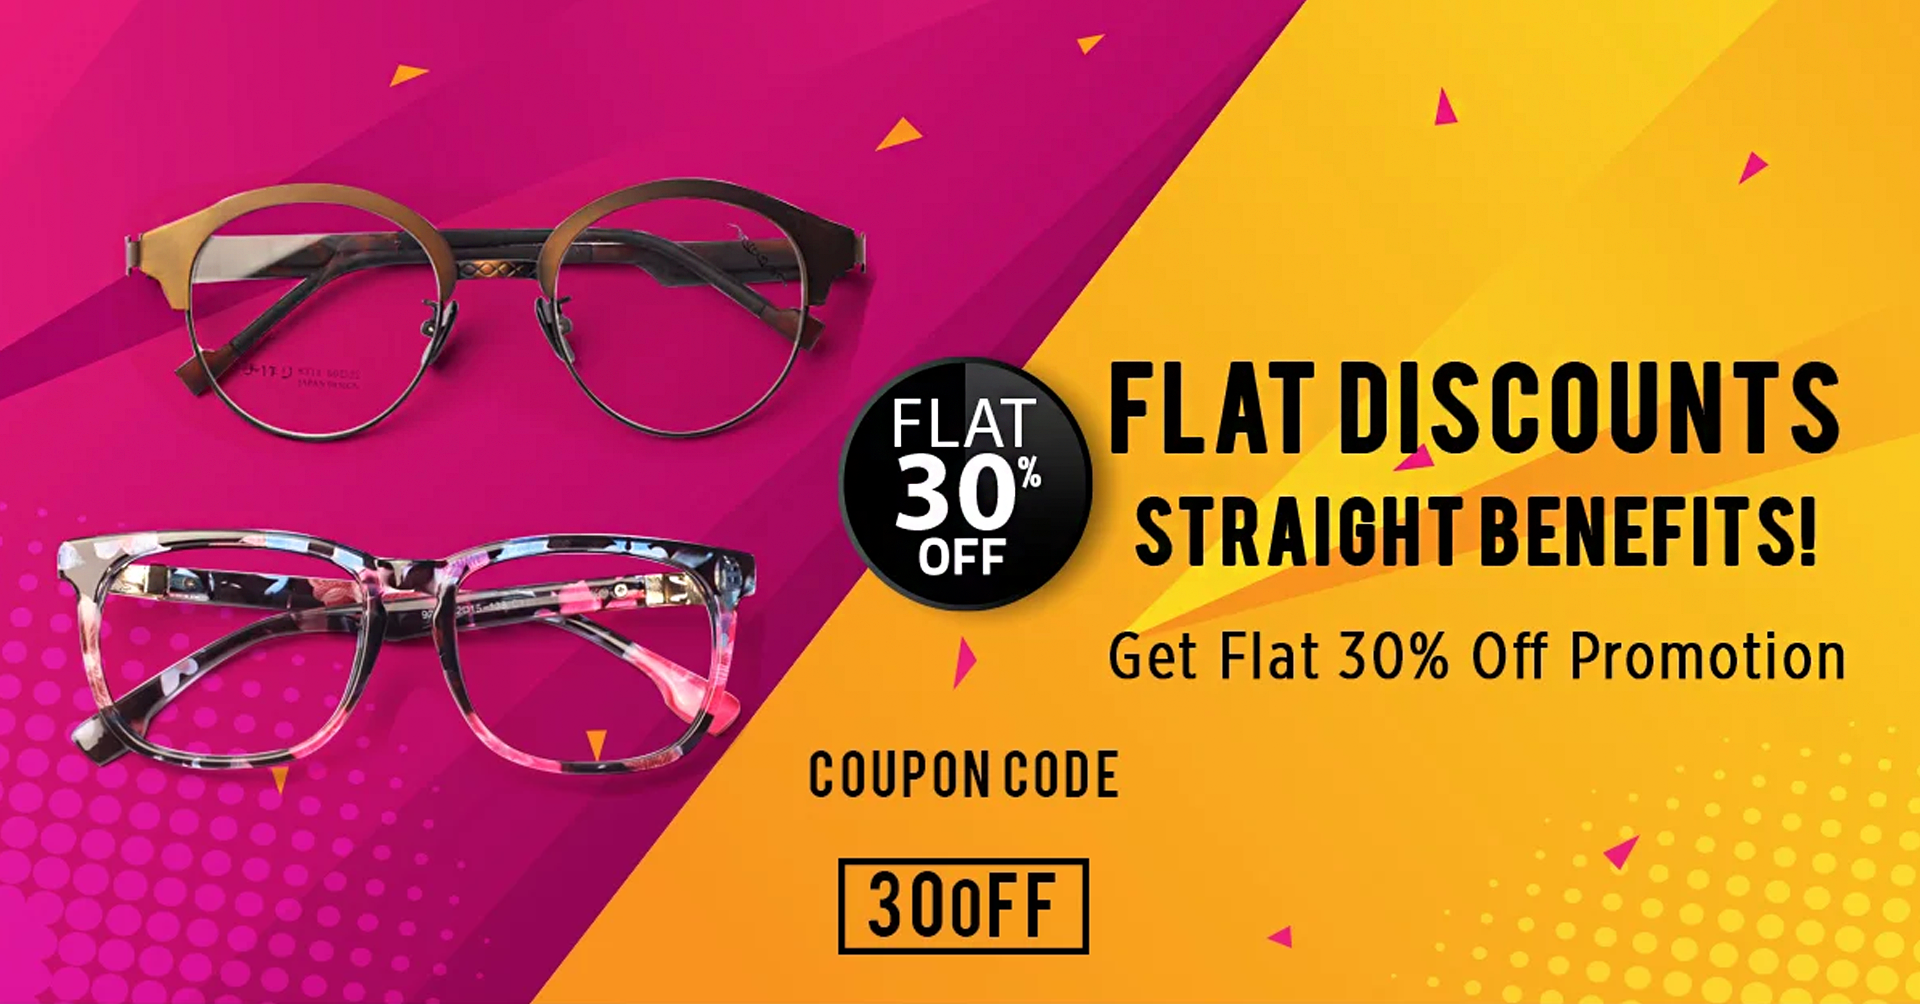 Sale For Every Day - Get Exclusive Eyewear Promotions at Goggles4U